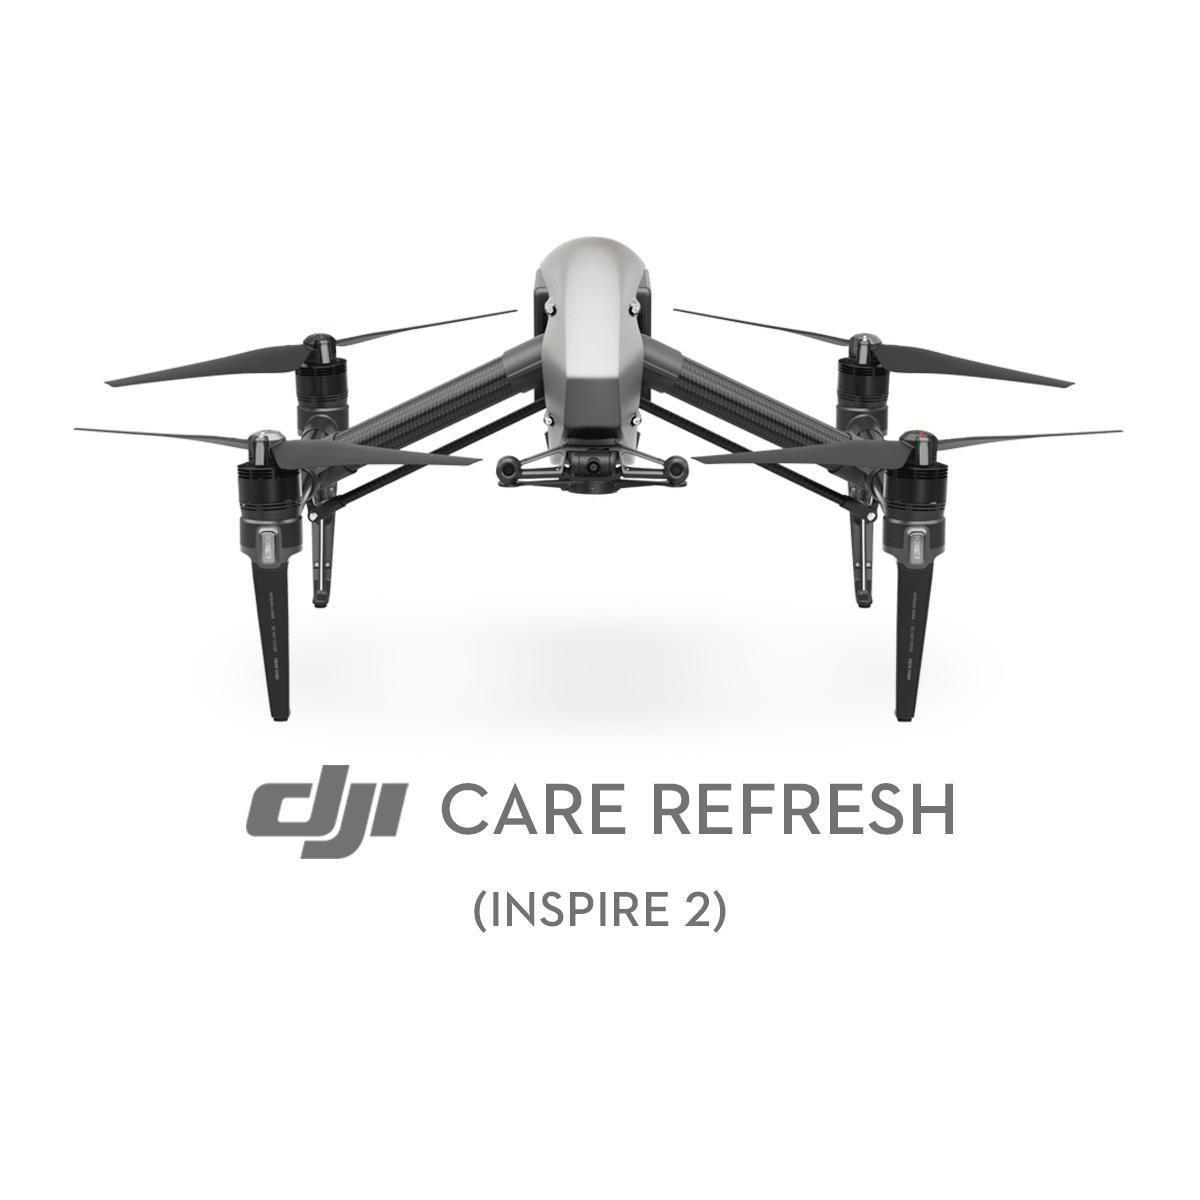 DJI Care Refresh (Inspire 2) Activation card